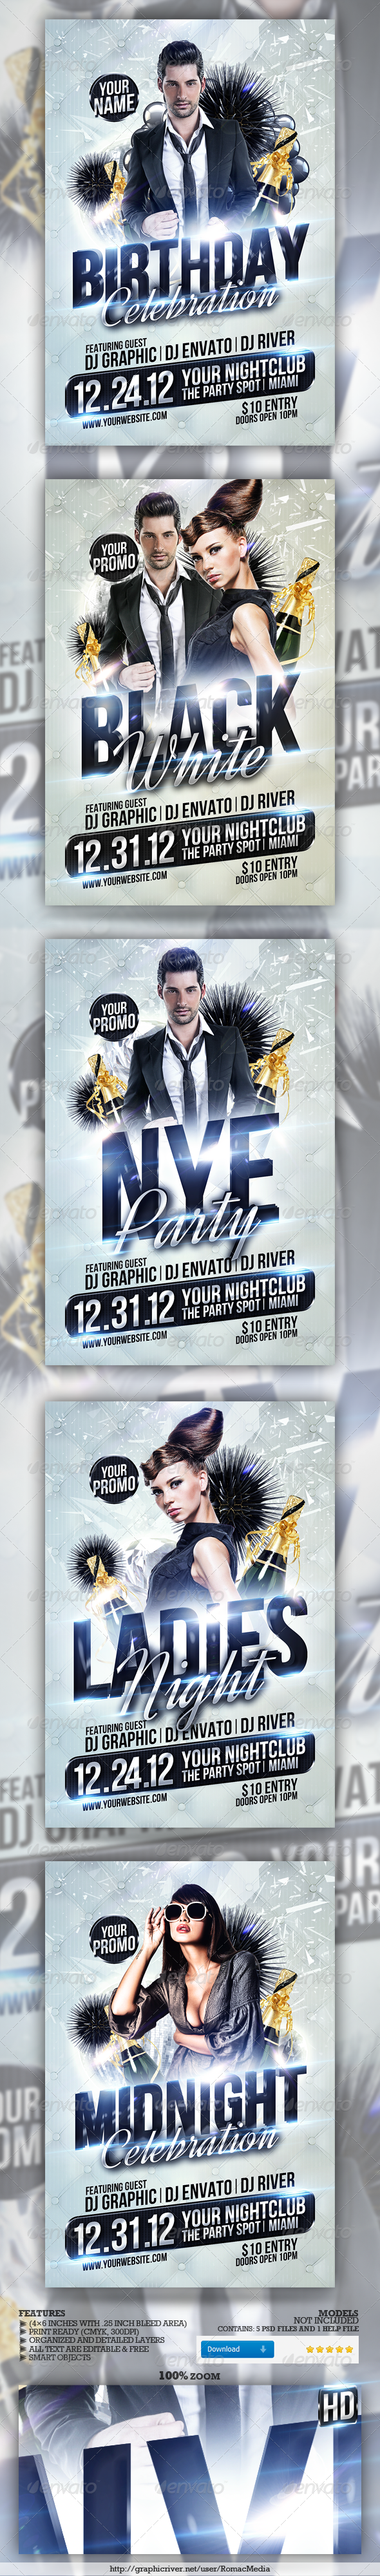 Club Sessions l Multi-Title Party Flyers - Clubs & Parties Events